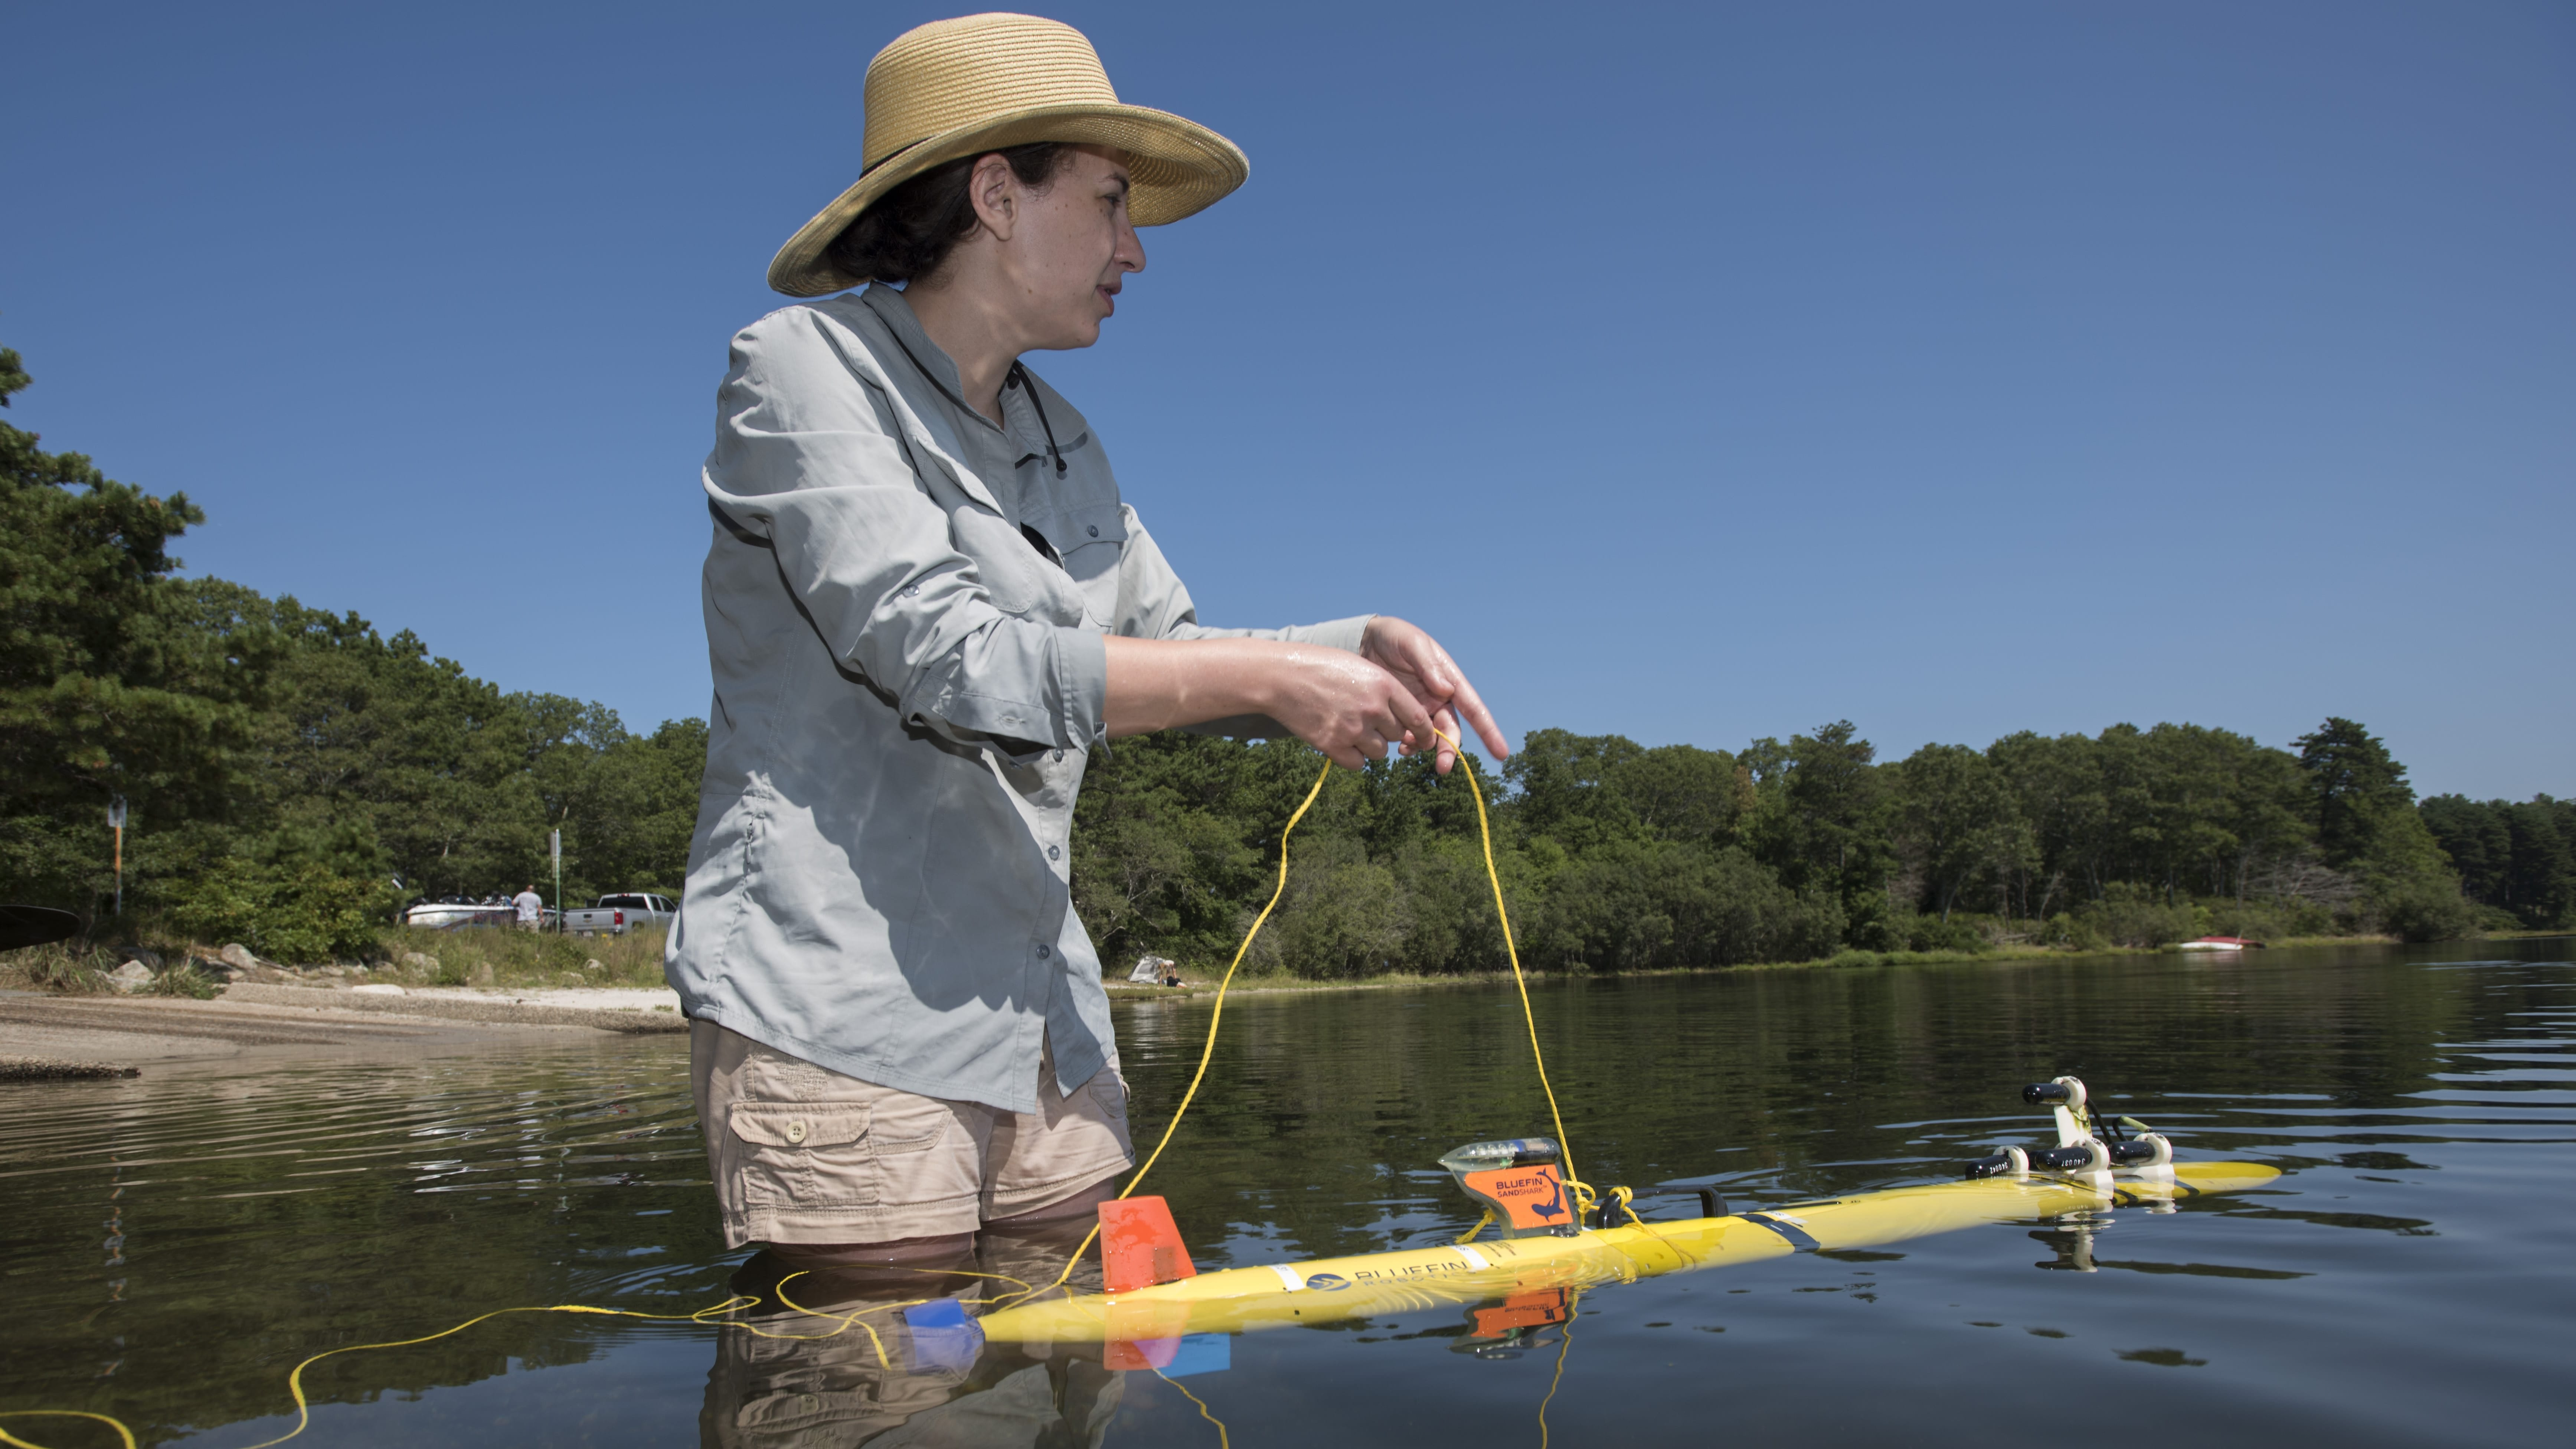 Erin Fischell testing new vehicles at Ashumet Pond on Cape Cod. Photo by Thomas N. Kleindinst | WHOI